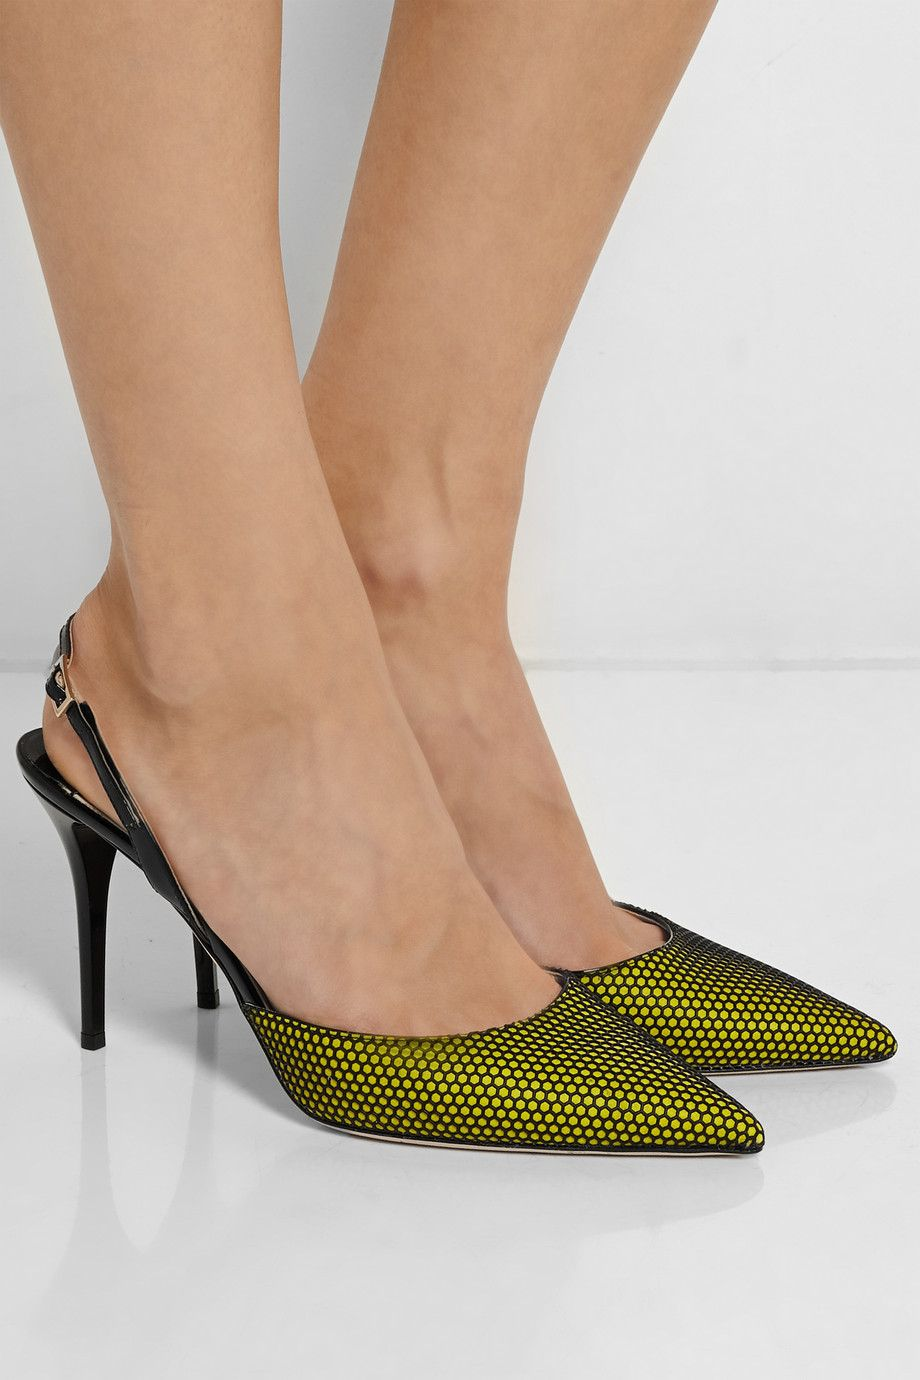 5066d7a377fa Jimmy ChooTilly honeycomb-mesh and patent-leather pumpsfront